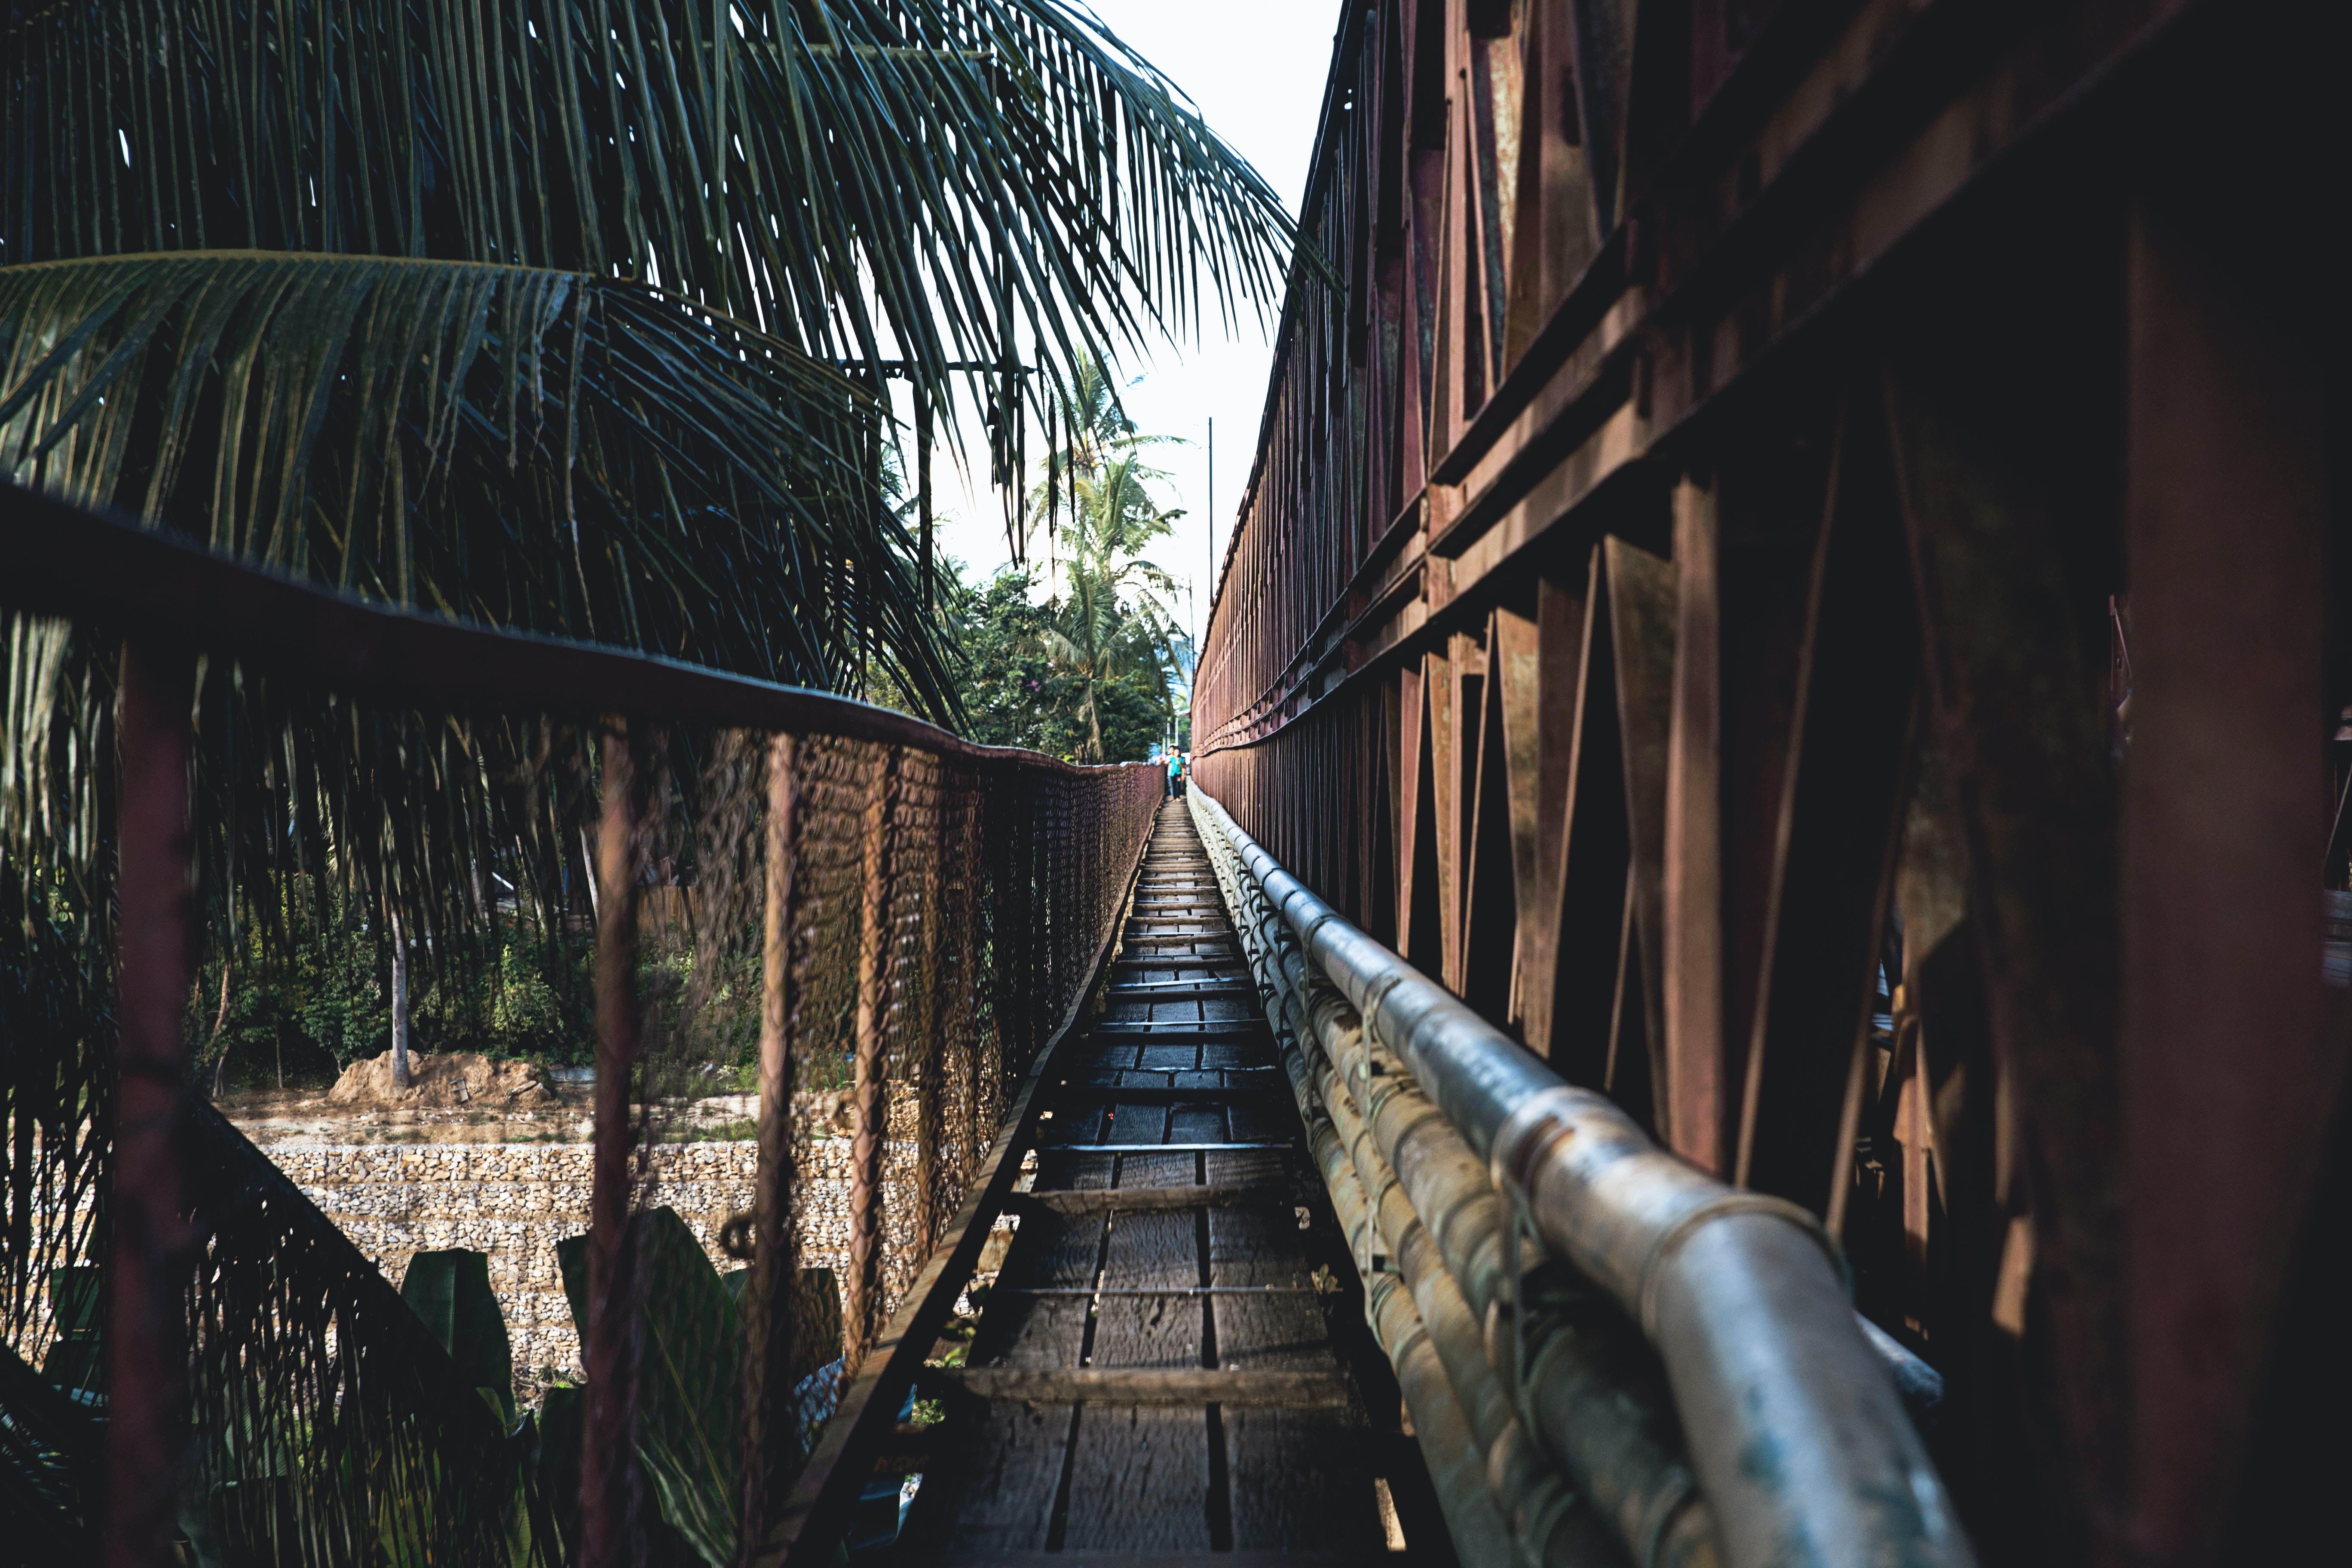 A wooden bridge that is lined with pipes and palm trees in Luang Prabang